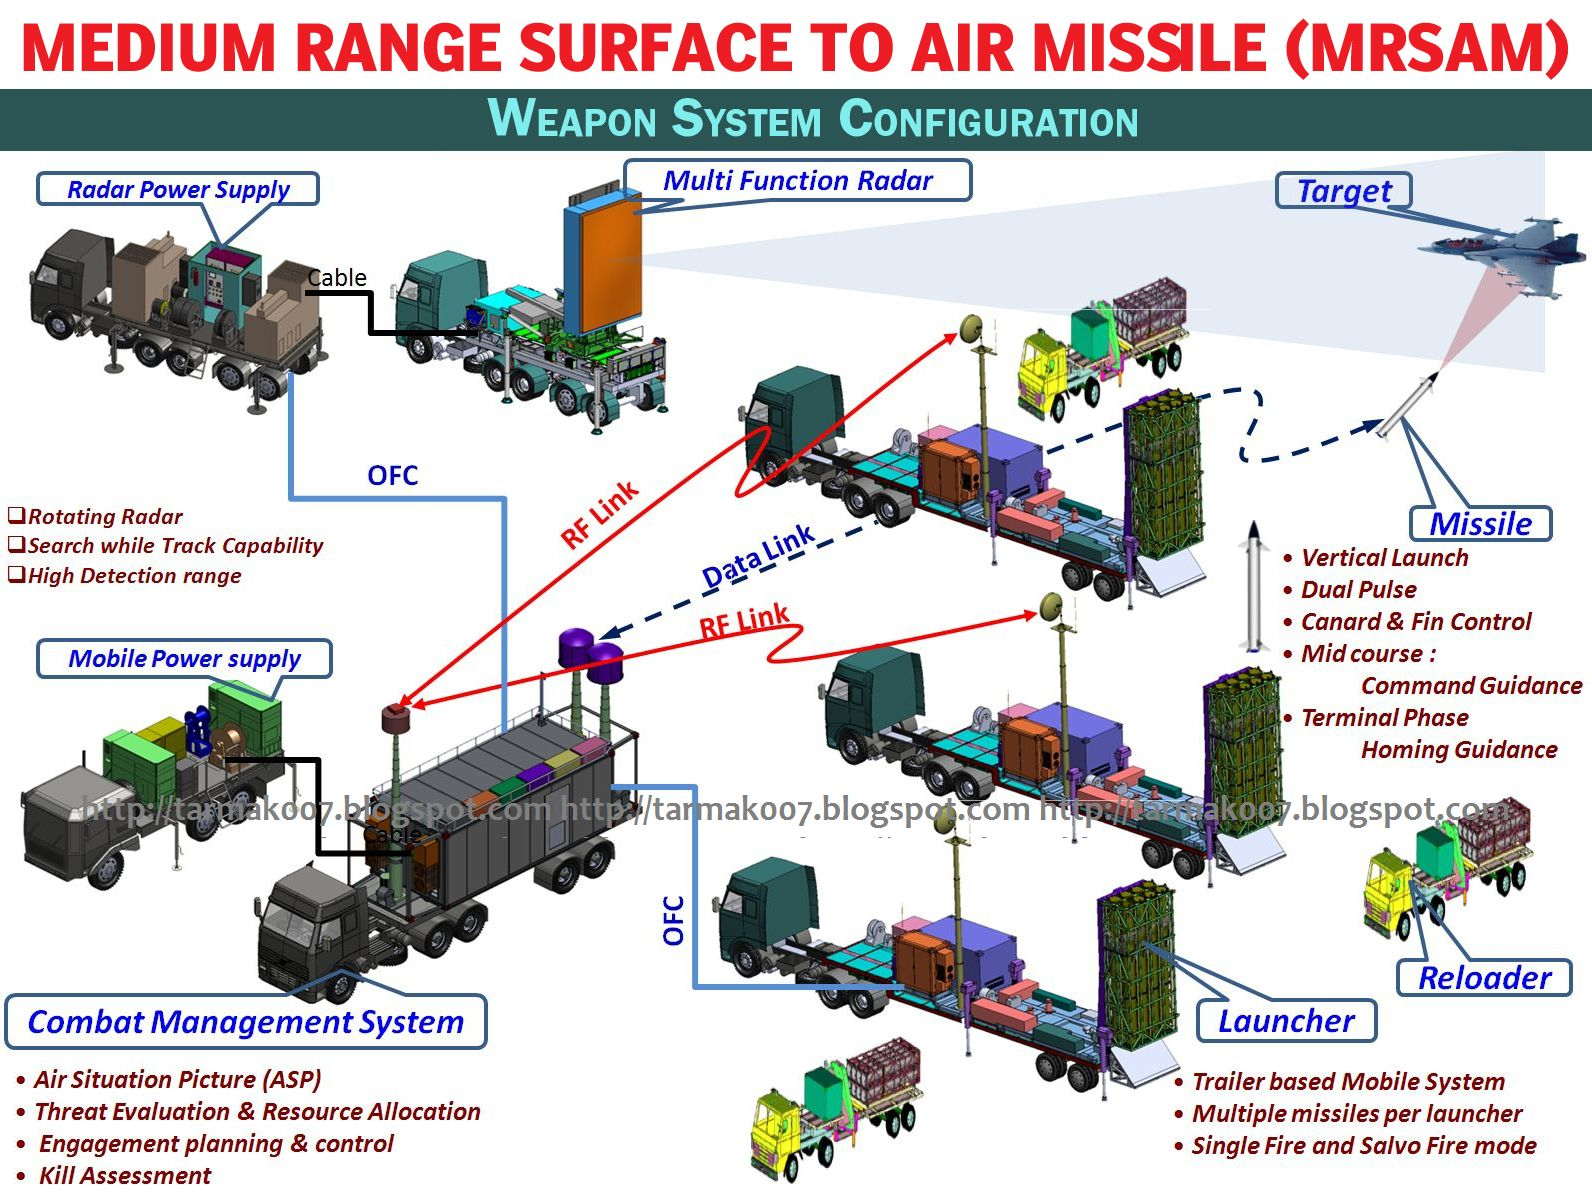 Tarmak007 A Bold Blog On Indian Defence Mrsam Gains Momentum F414 Engine Diagram India Israel Developing 450 Missiles 18 Firing Units Under The Project